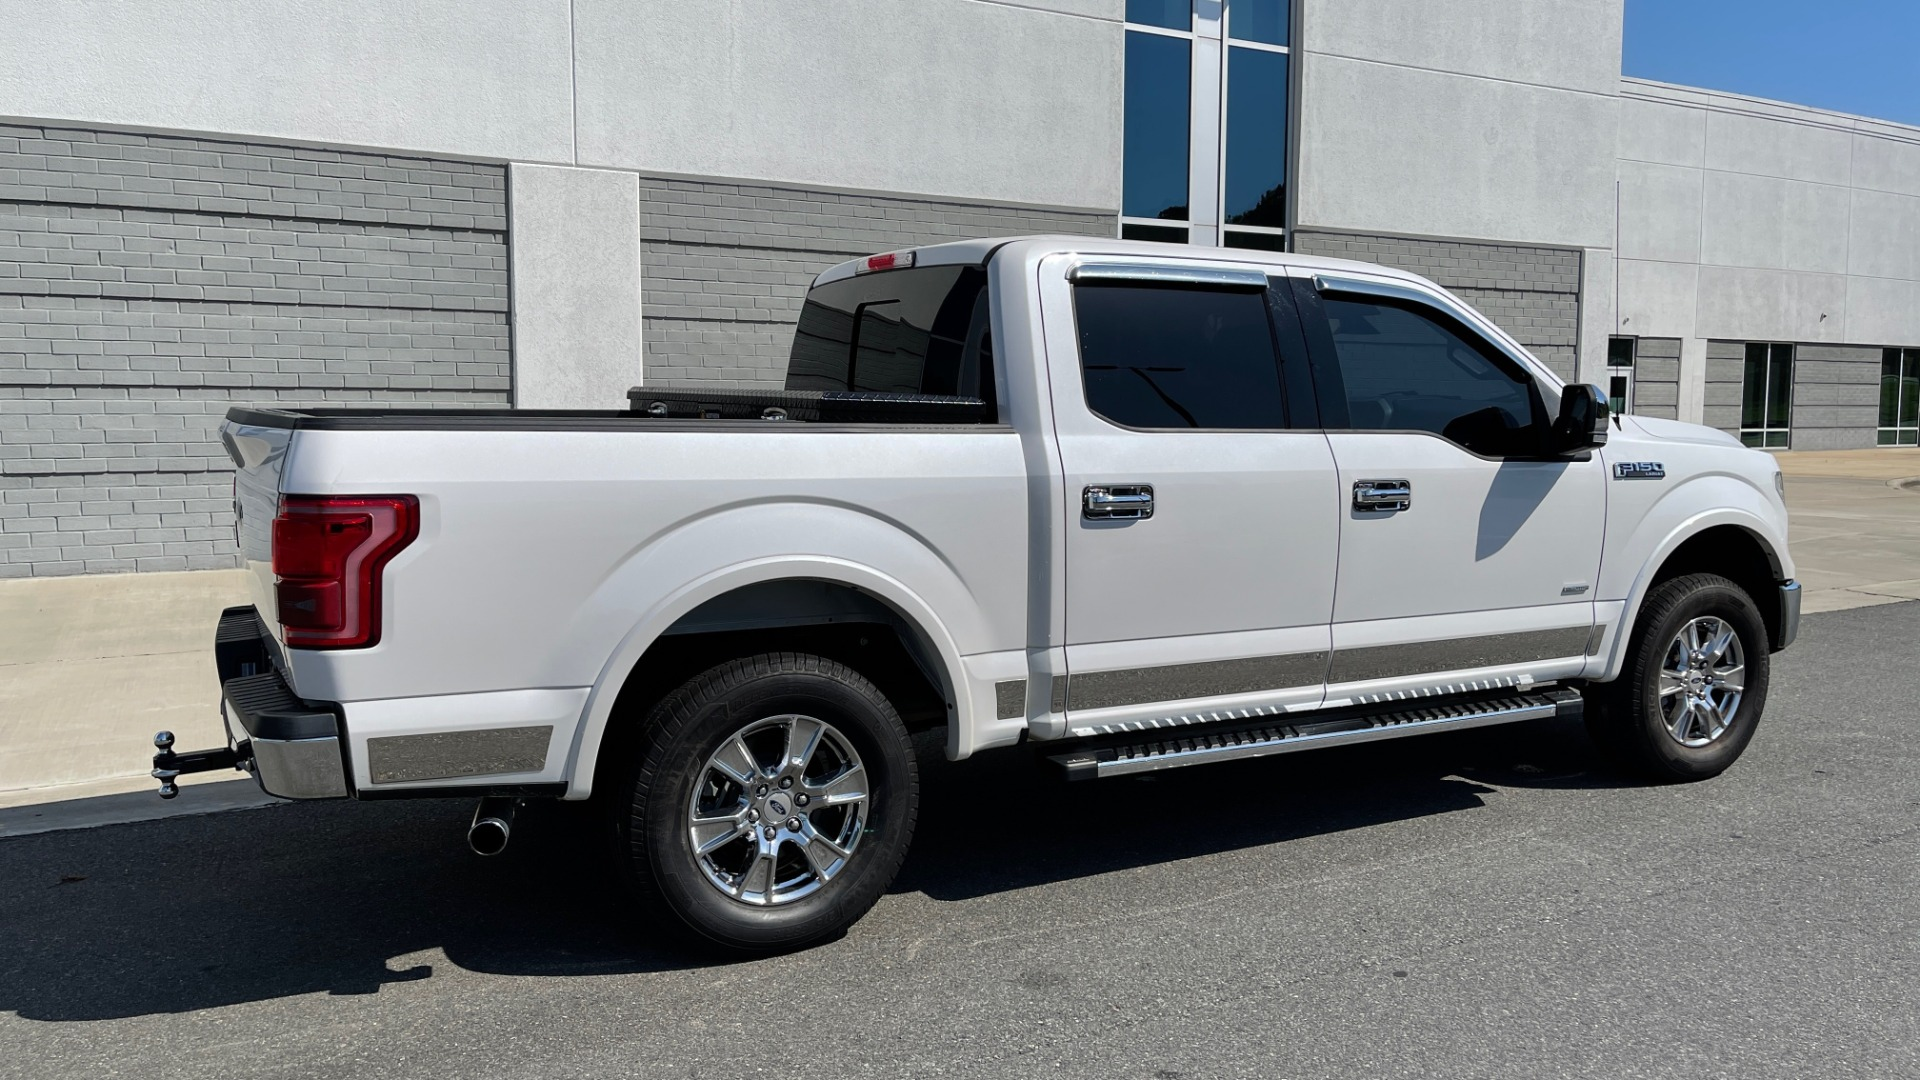 Used 2016 Ford F-150 LARIAT 4X4 / 3.5L V6 / 6-SPD AUTO / BLIS / SONY / NAV / REARVIEW for sale $37,500 at Formula Imports in Charlotte NC 28227 7